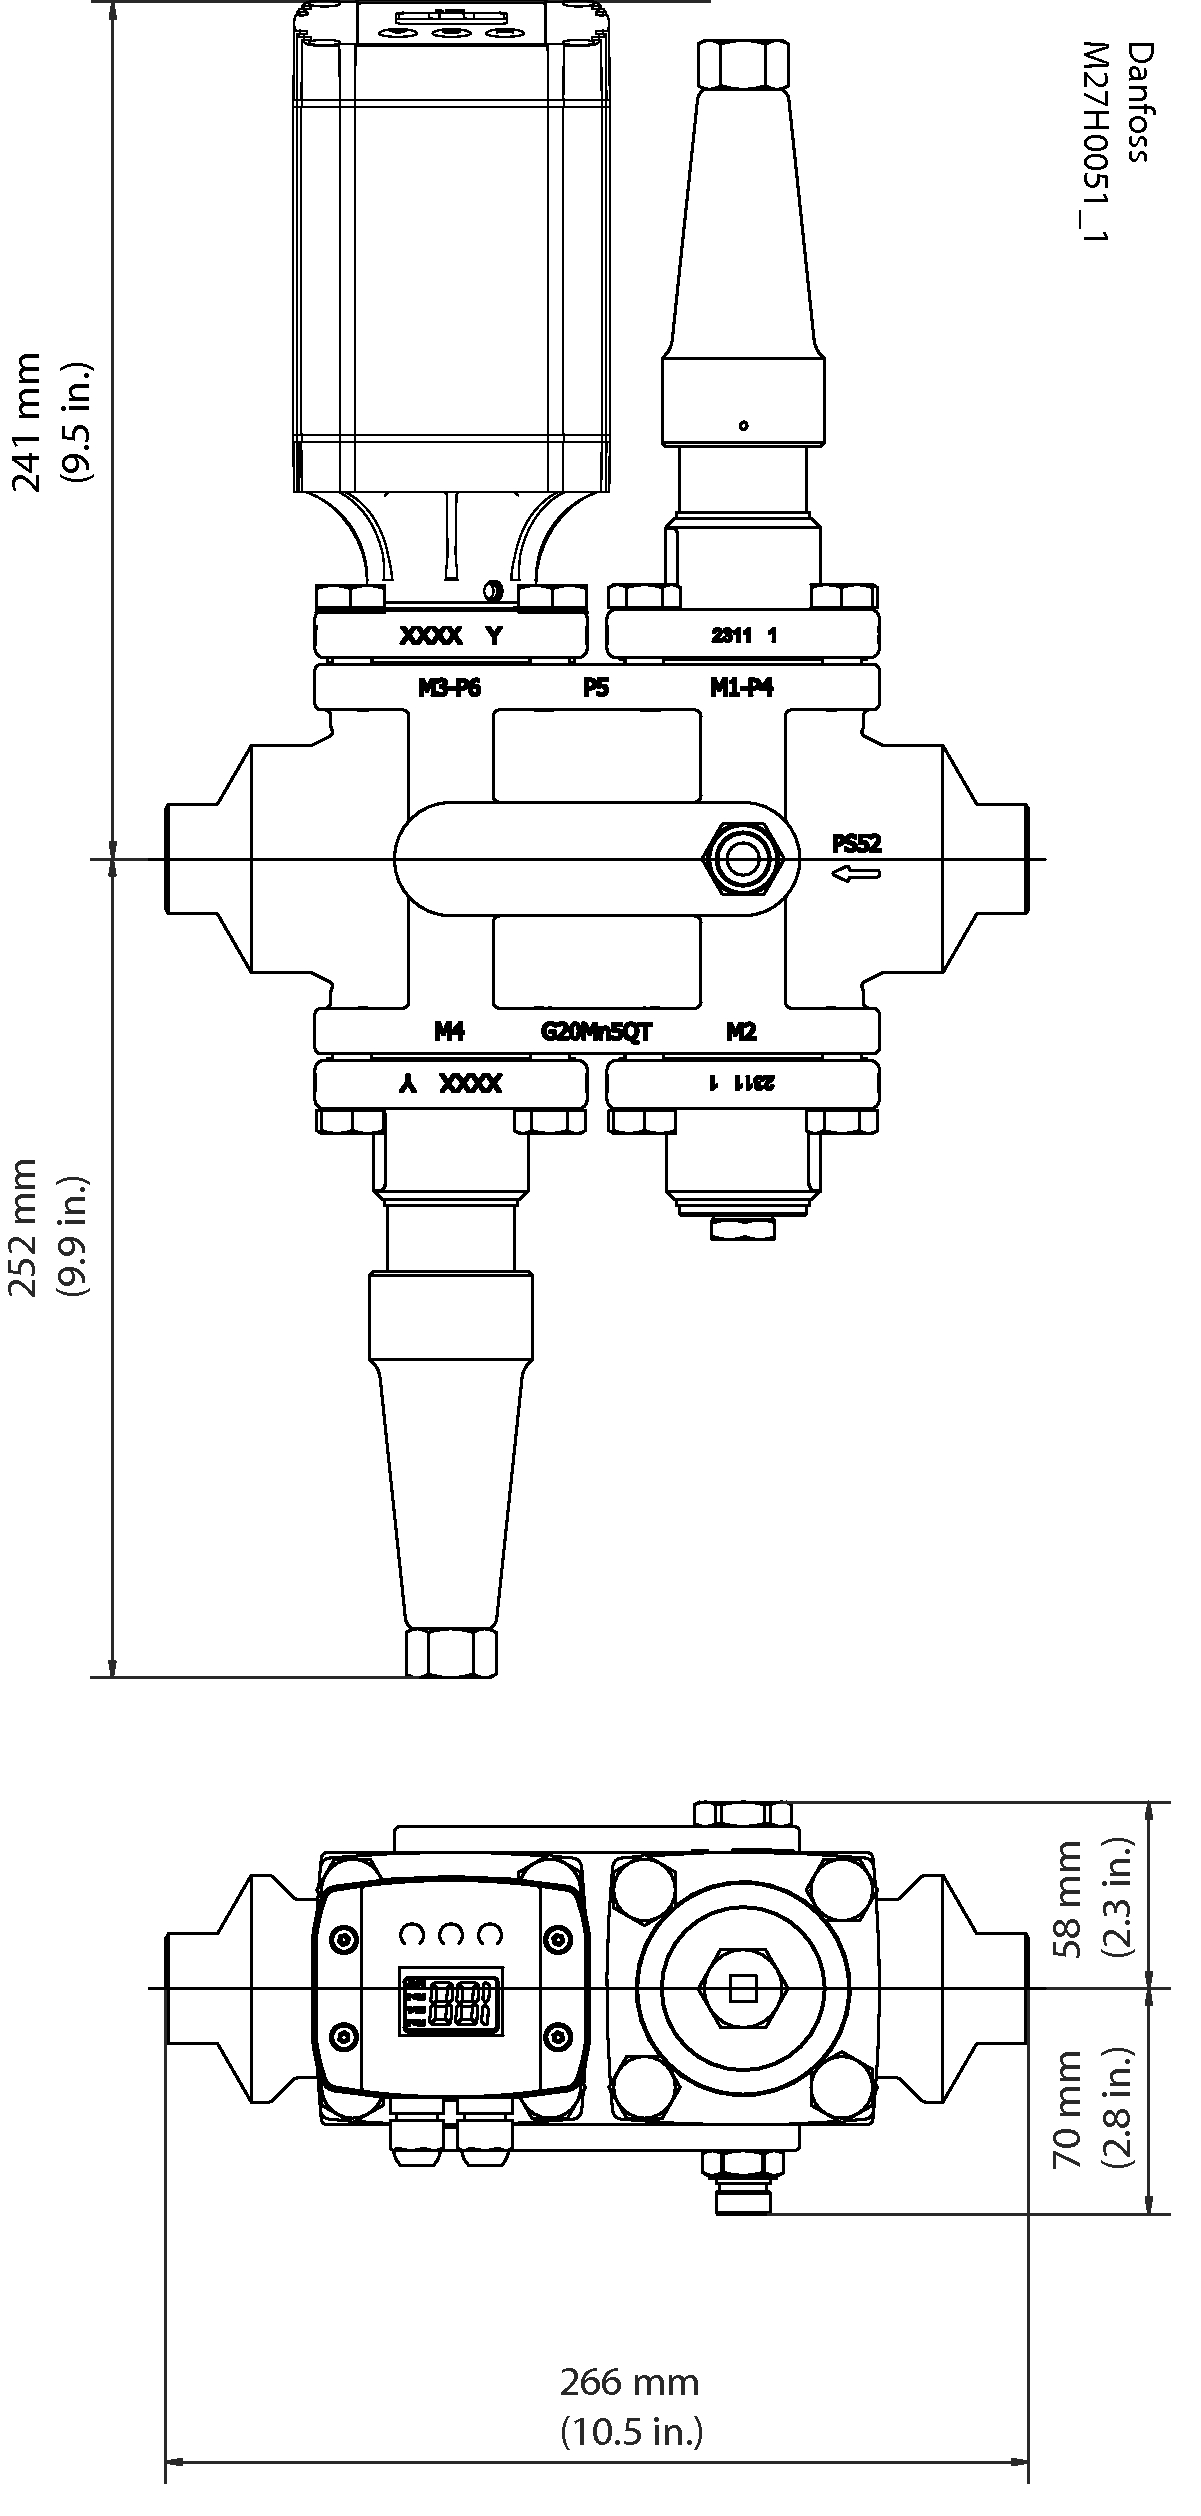 Product Name Valve Station Type Icf 25 4 10rb Stations Mm 2 58t Wiring Diagram For Thermostat Visuals